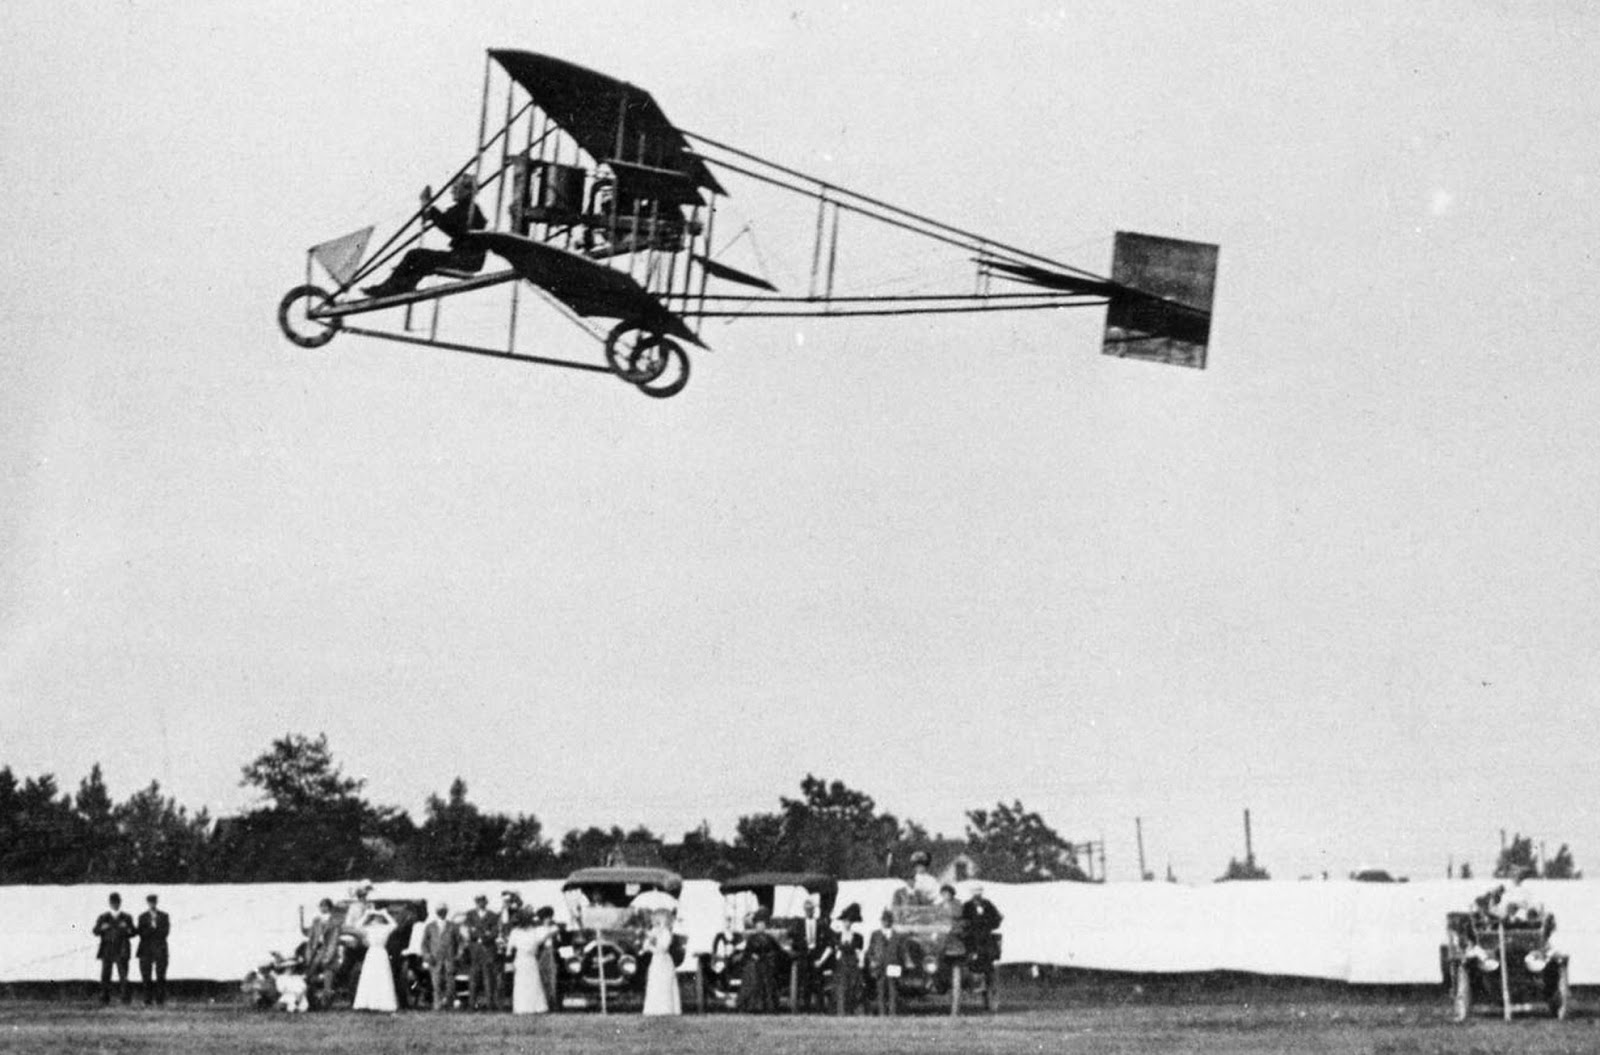 http://www.reading.lib.pa.us/Aviation_History_Month.pdf